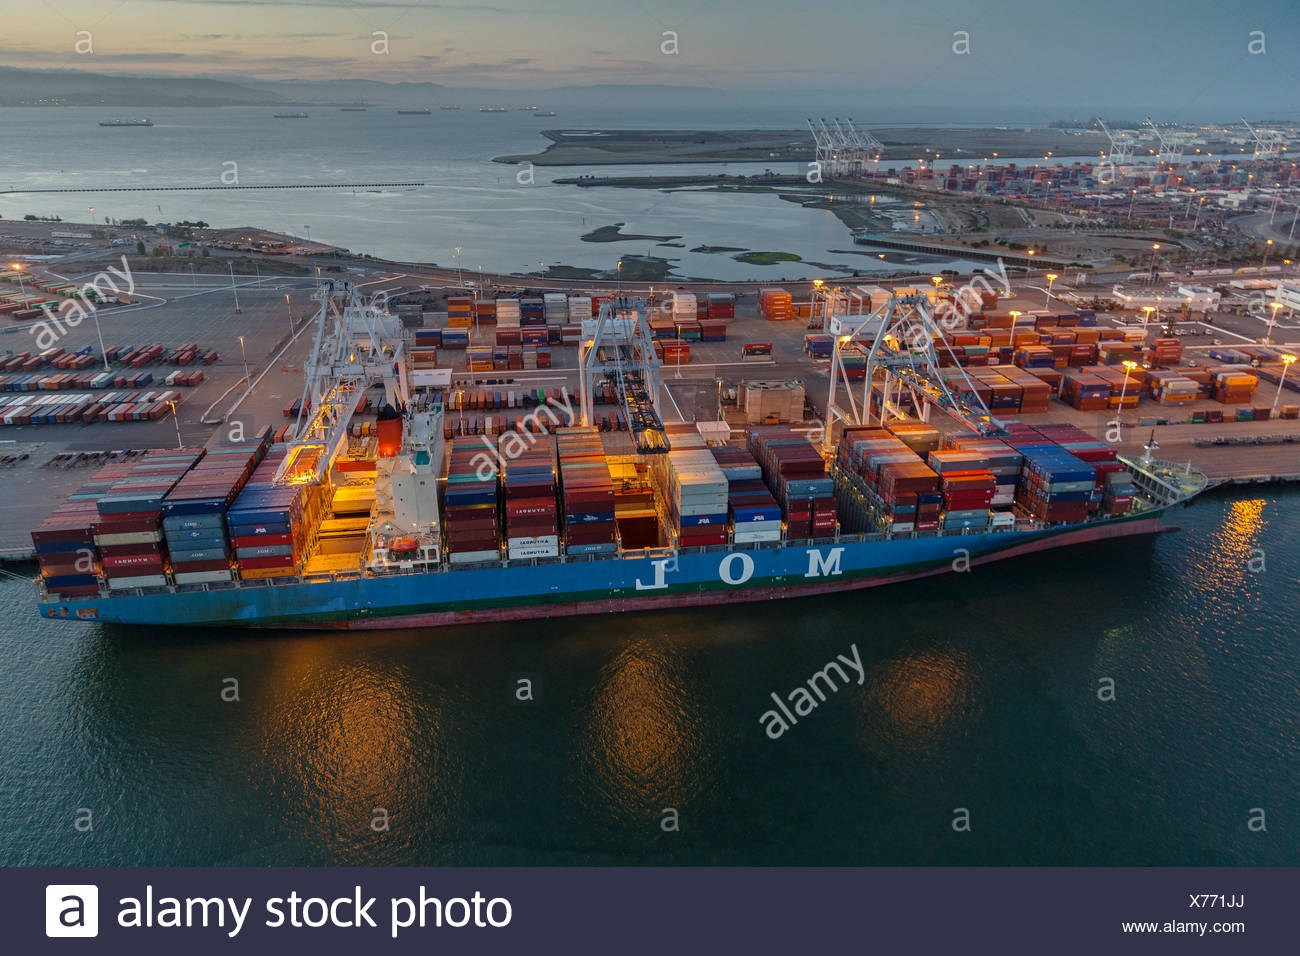 commercial dock with container ship at sunset,Oakland,California,USA - Stock Image